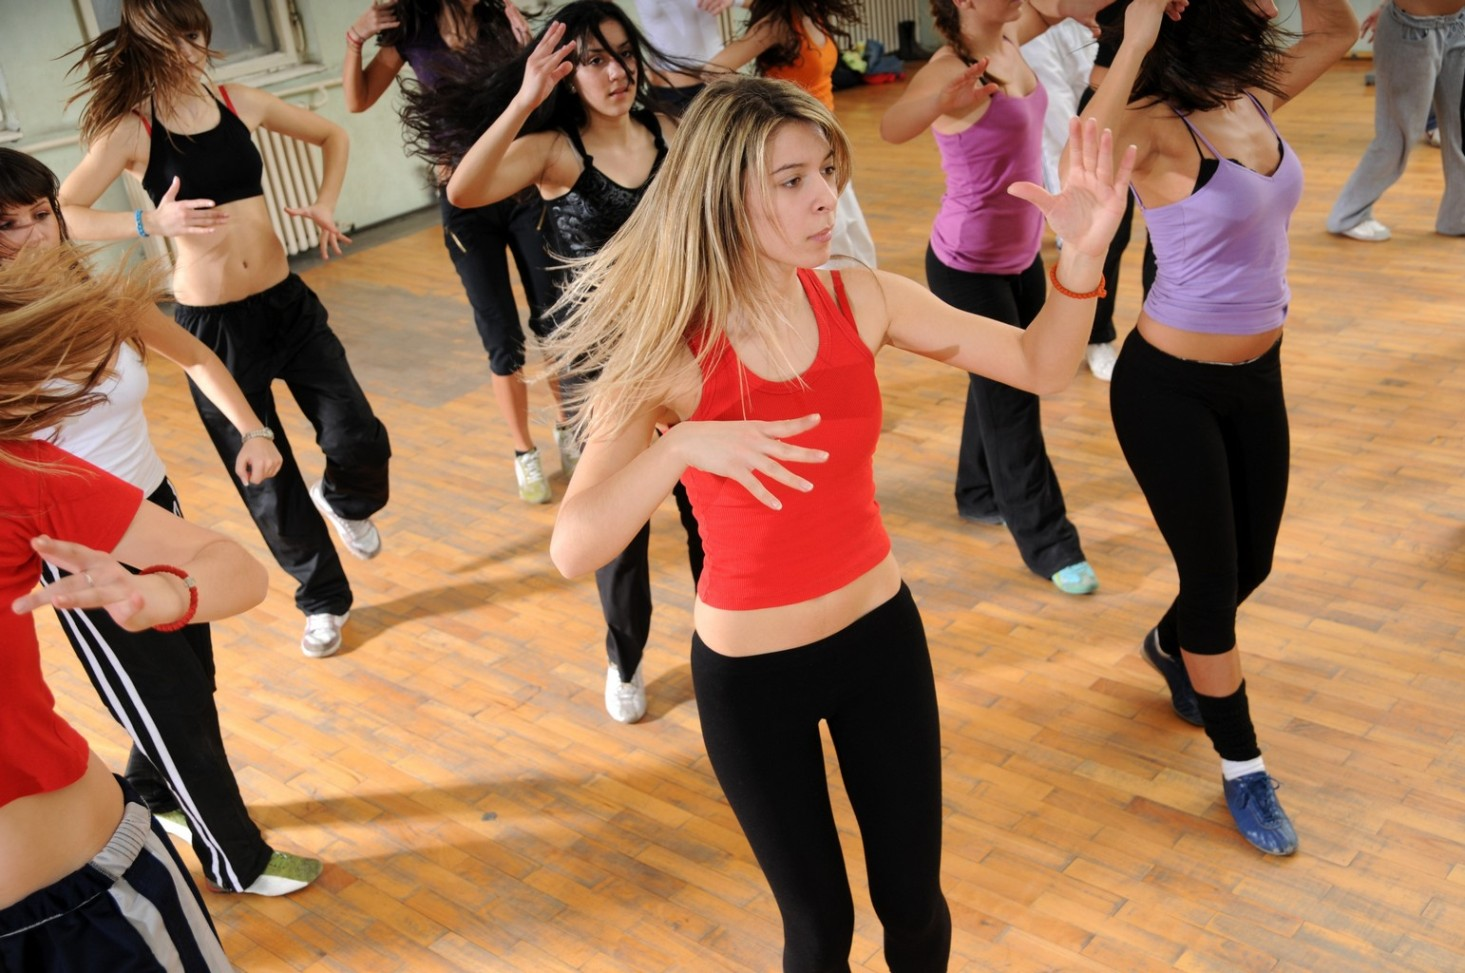 Zumba dance workout for beginners learn the poseidon